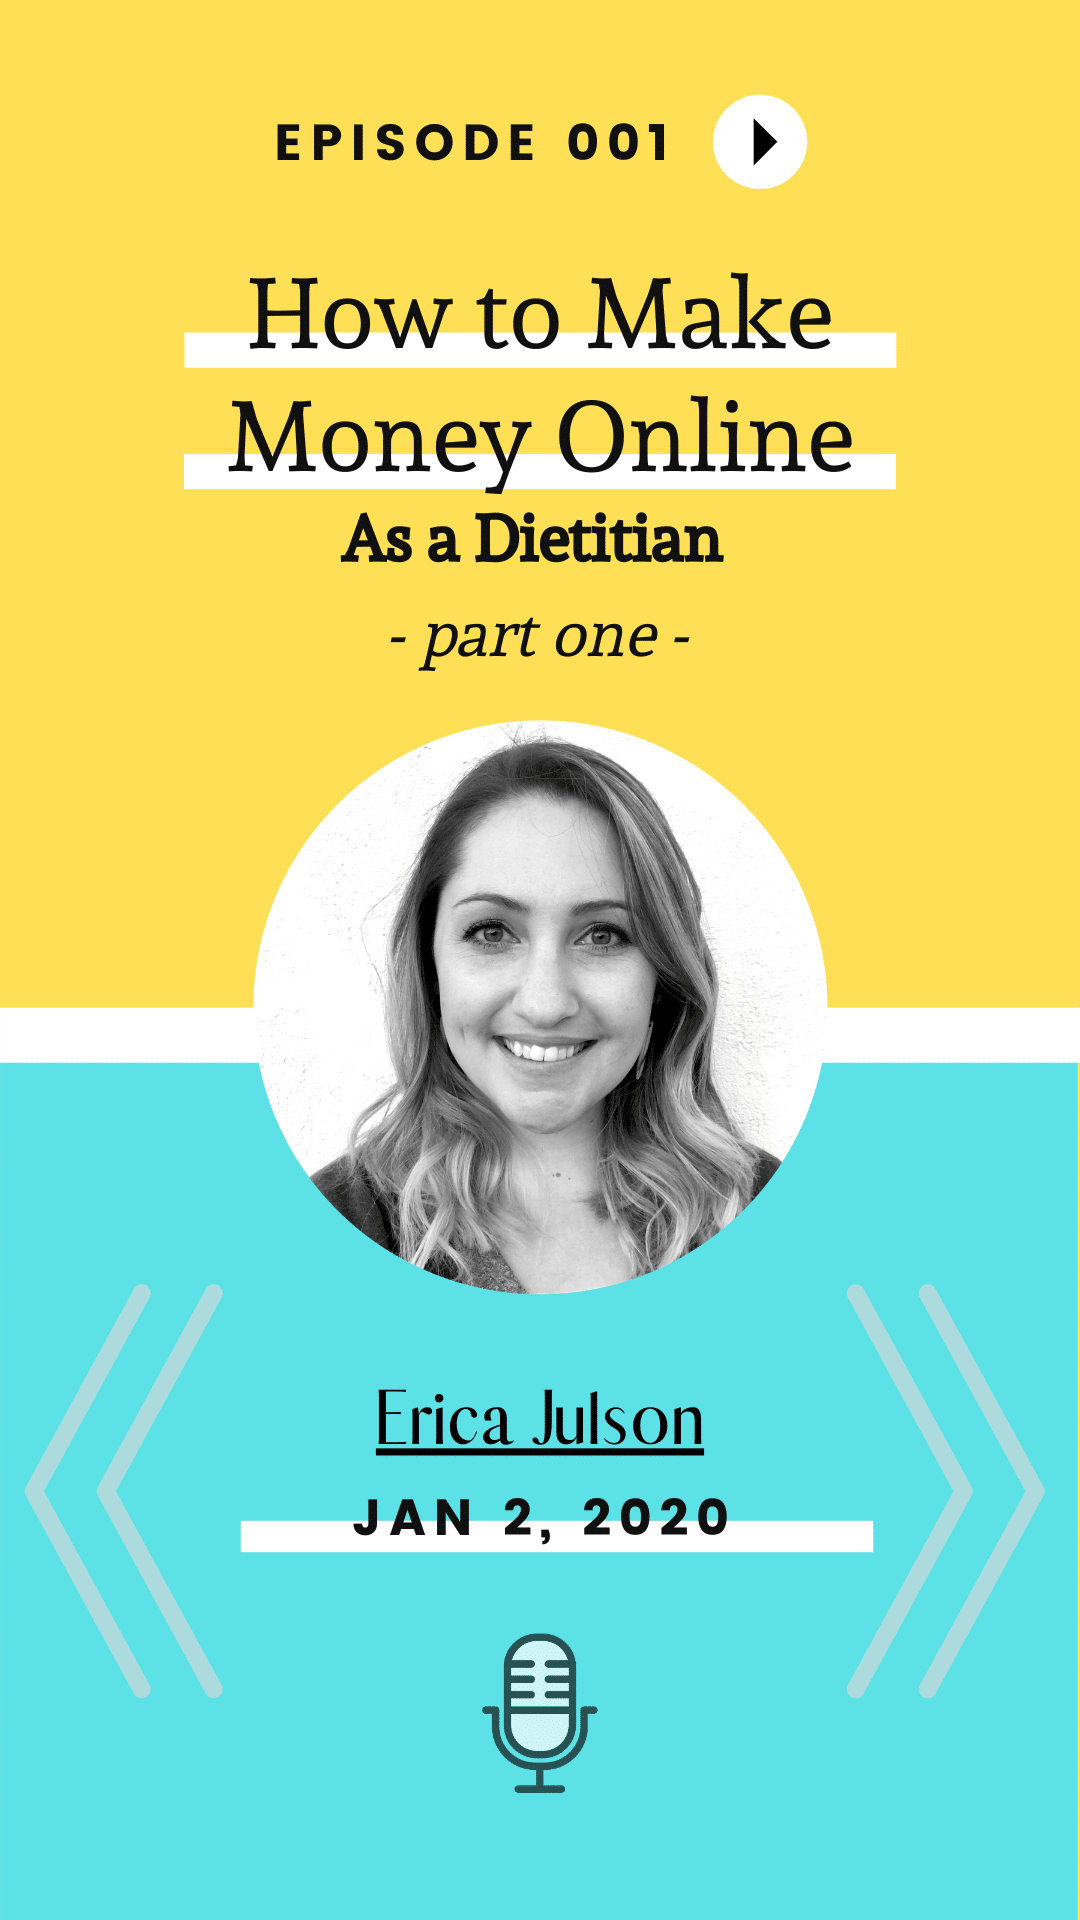 TURD001 How to Make Money Online As A Dietitian Part 1 Image